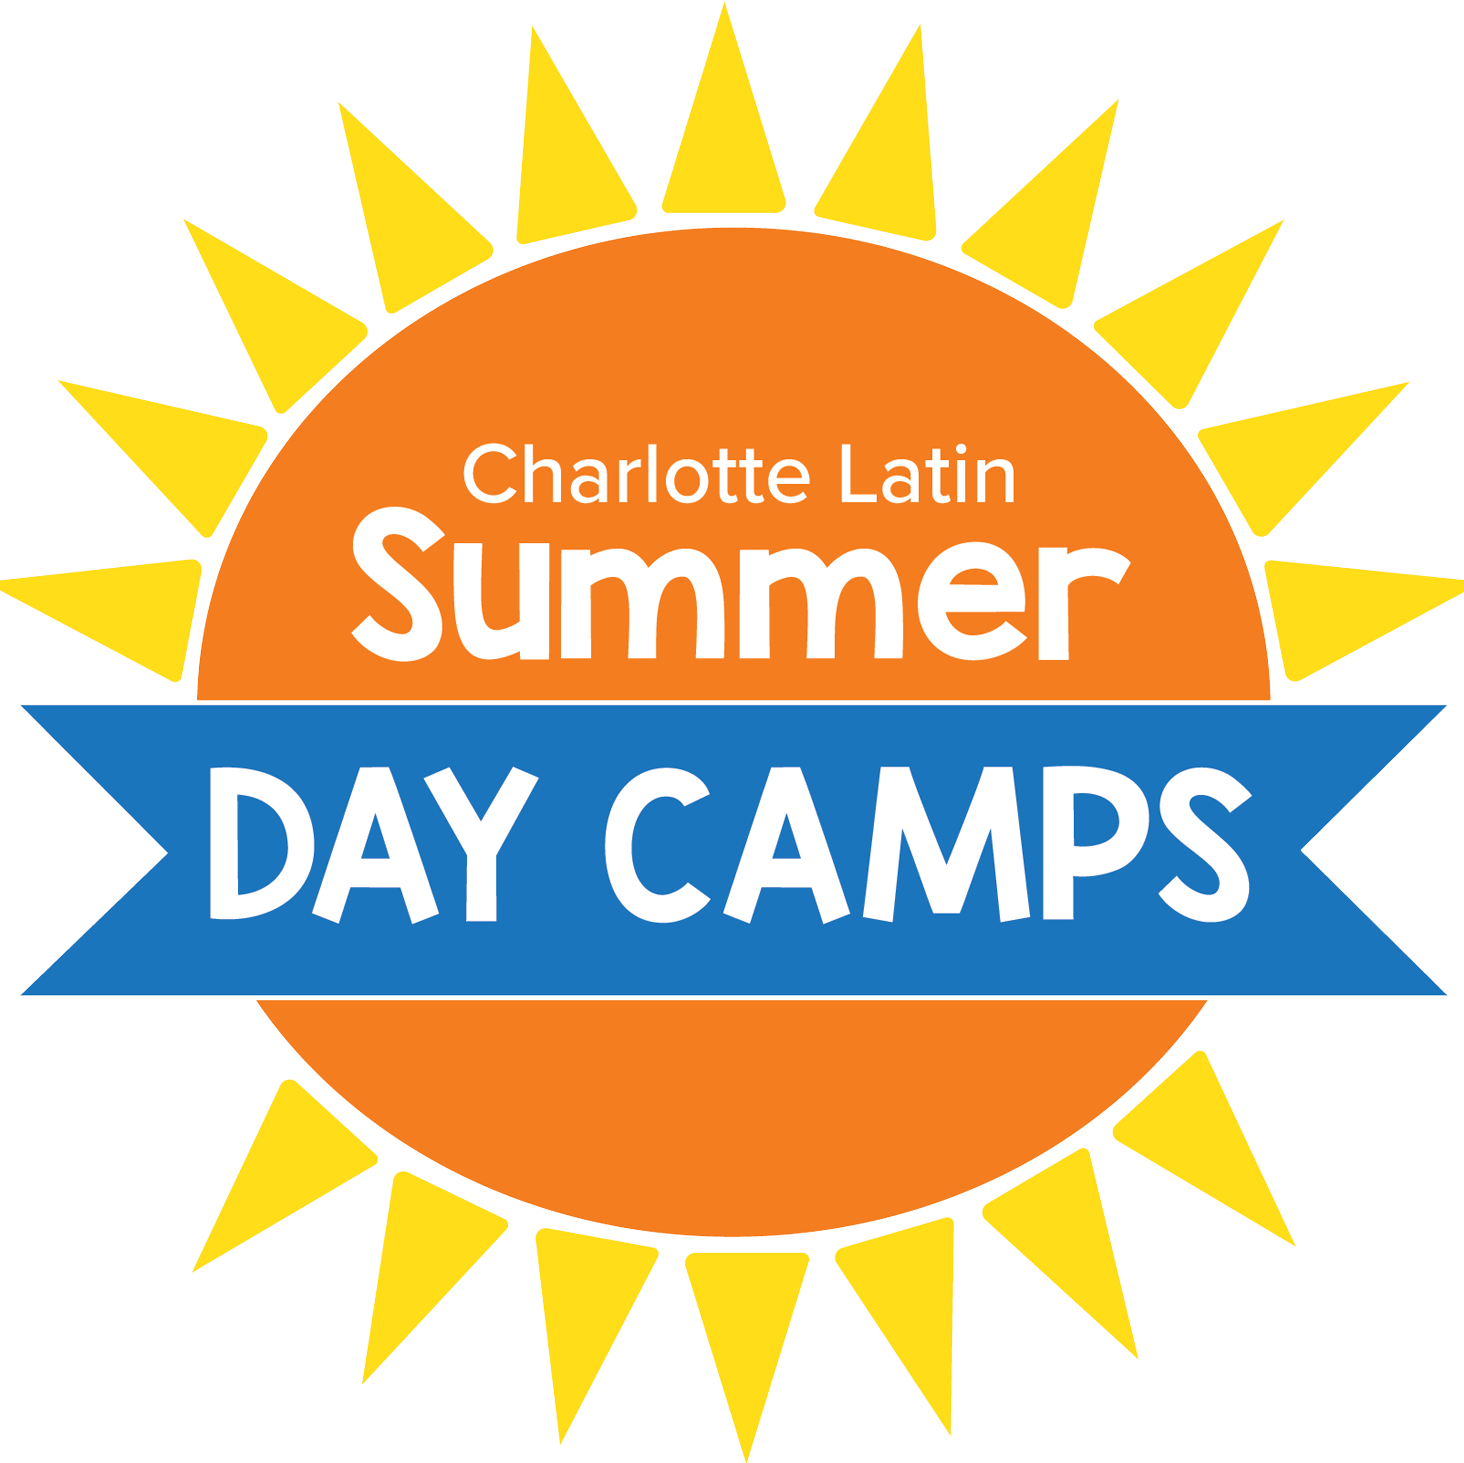 Charlotte Latin School Summer Day Camps